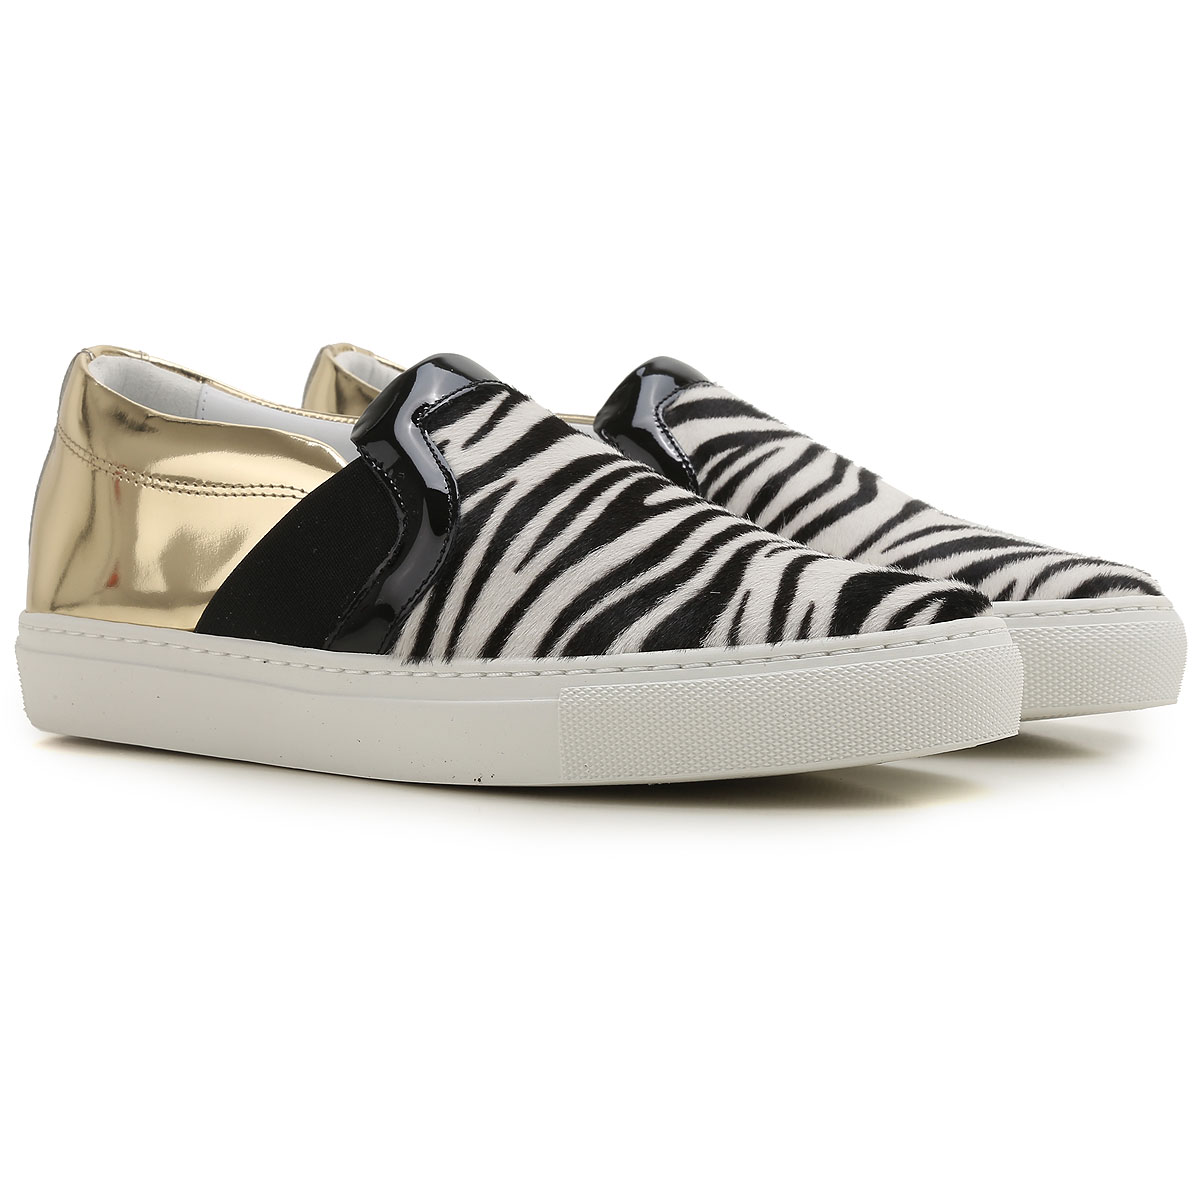 Lanvin Slip on Sneakers for Women On Sale in Outlet, Zebra-Striped, Leather, 2019, 6 7 9